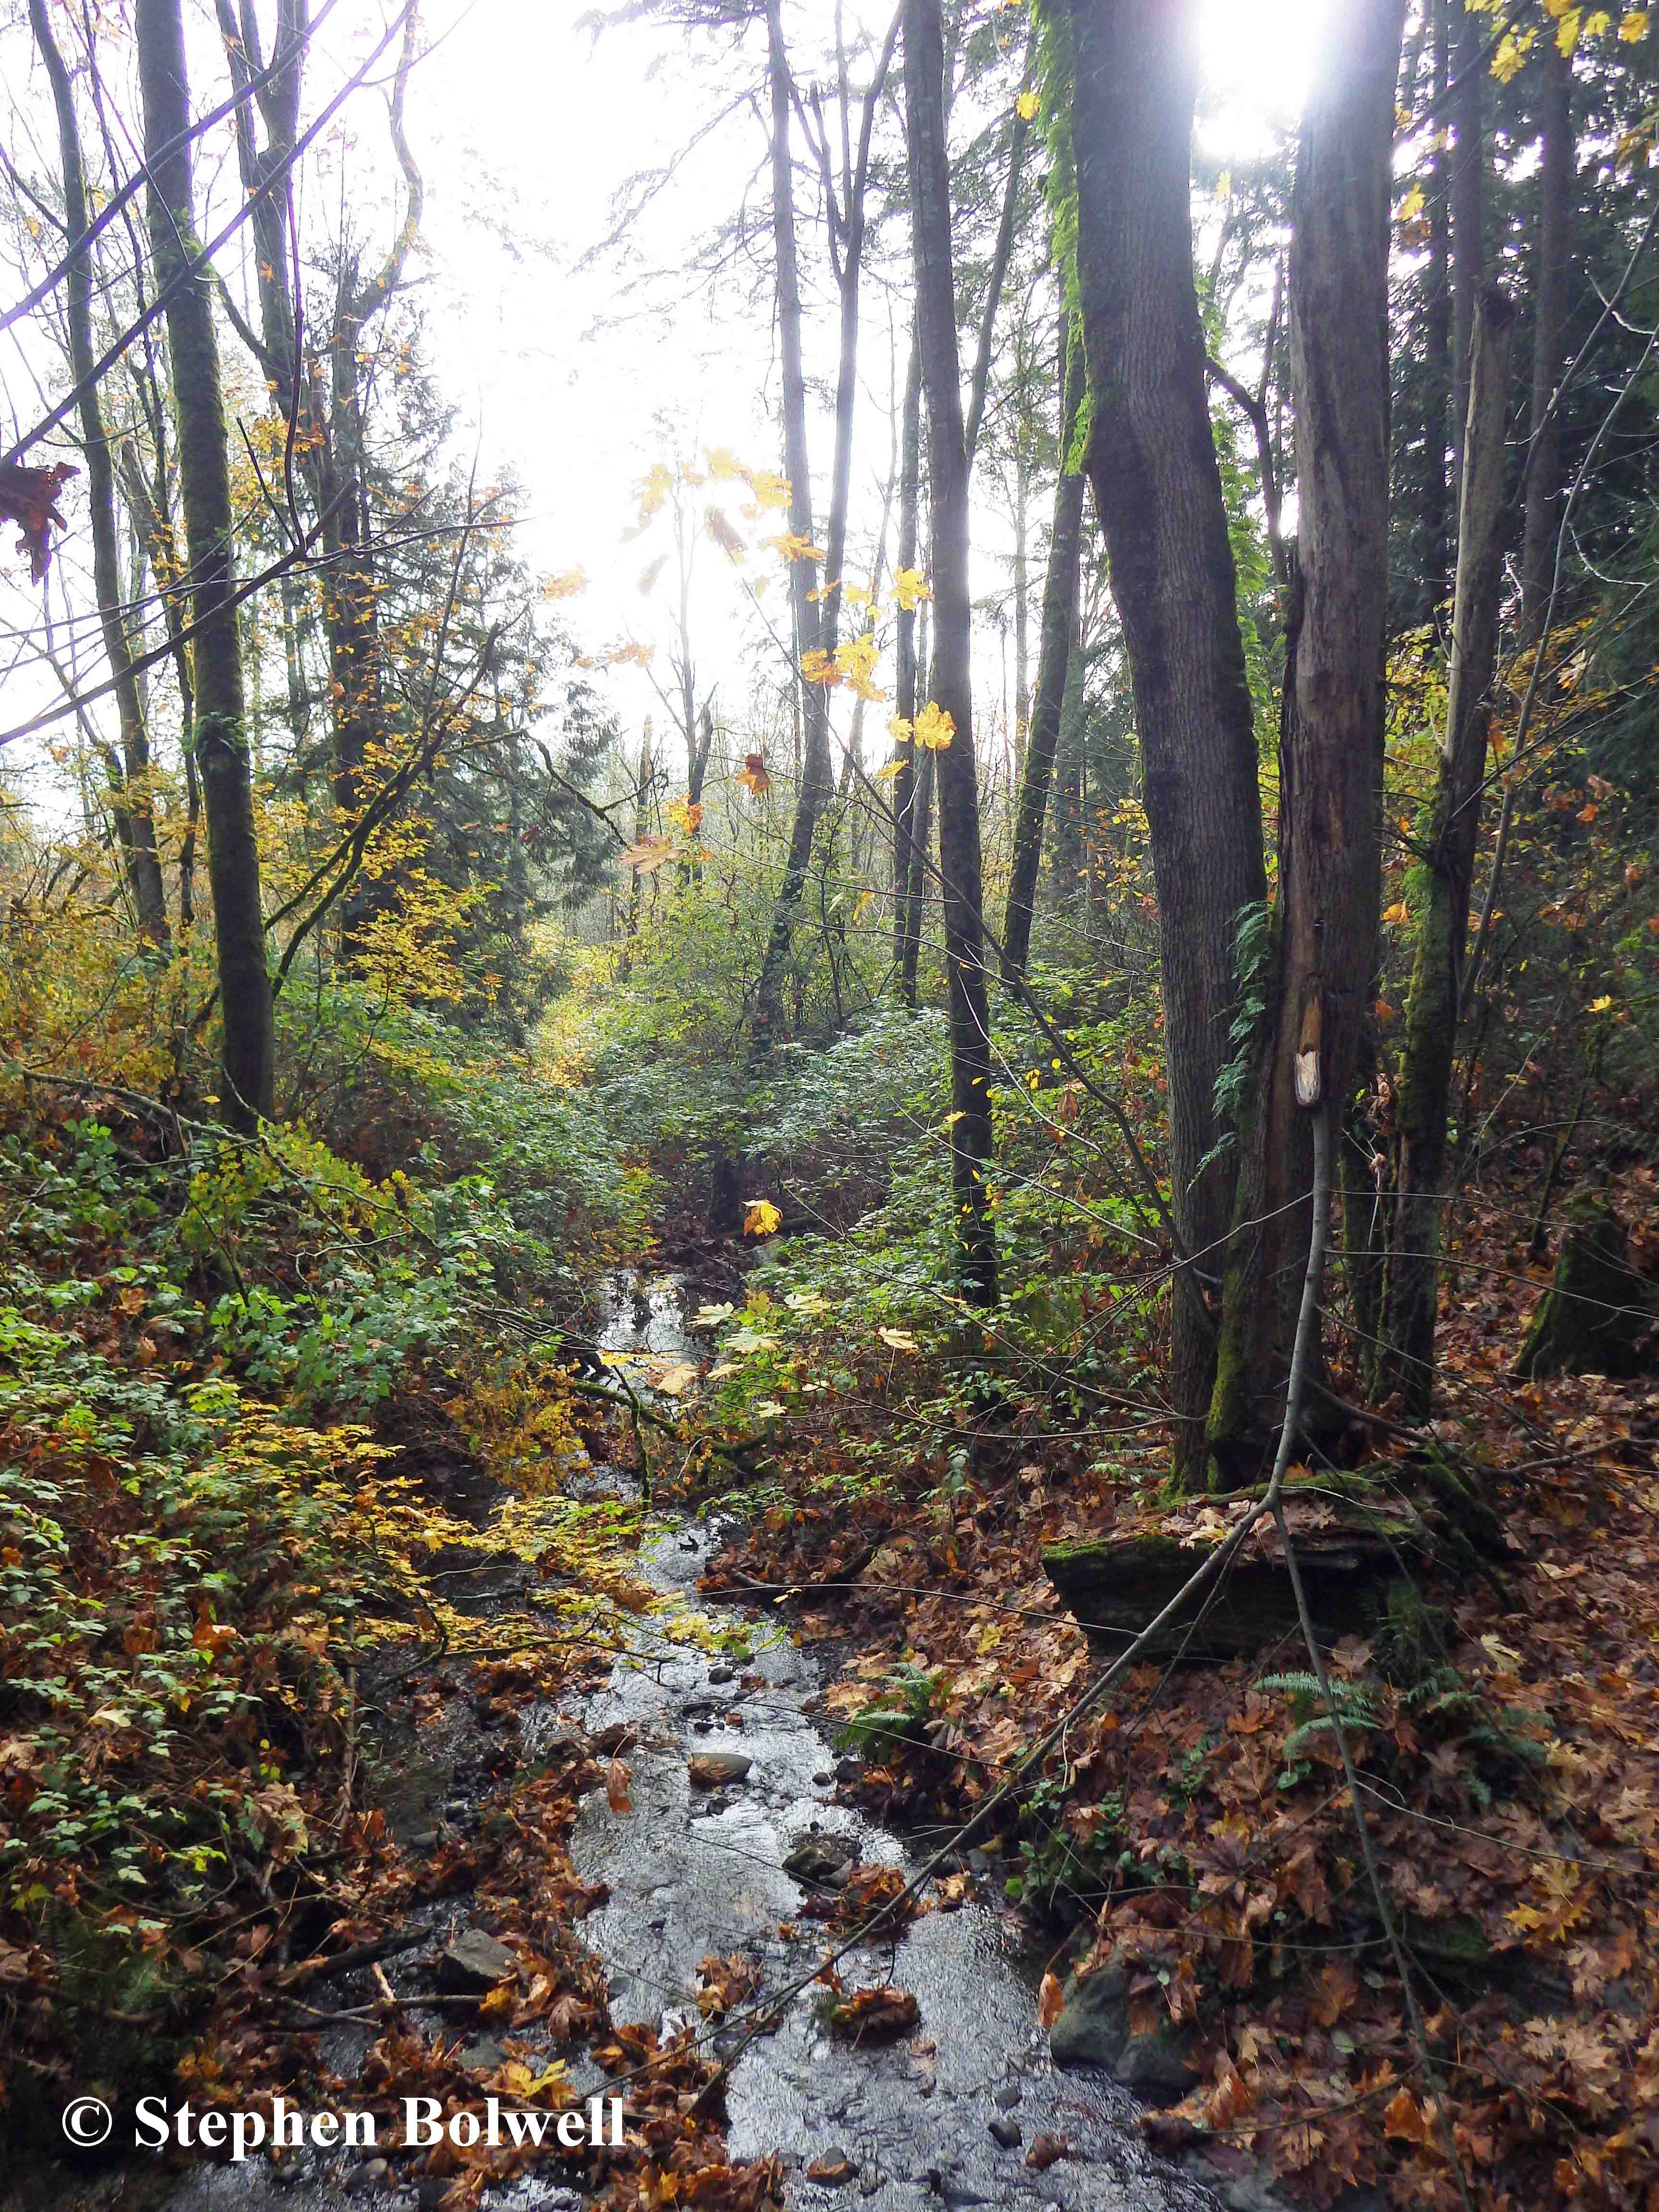 Surrey Fleetwood Park's woodland habitat is a little gem amongst an urban sprawl.